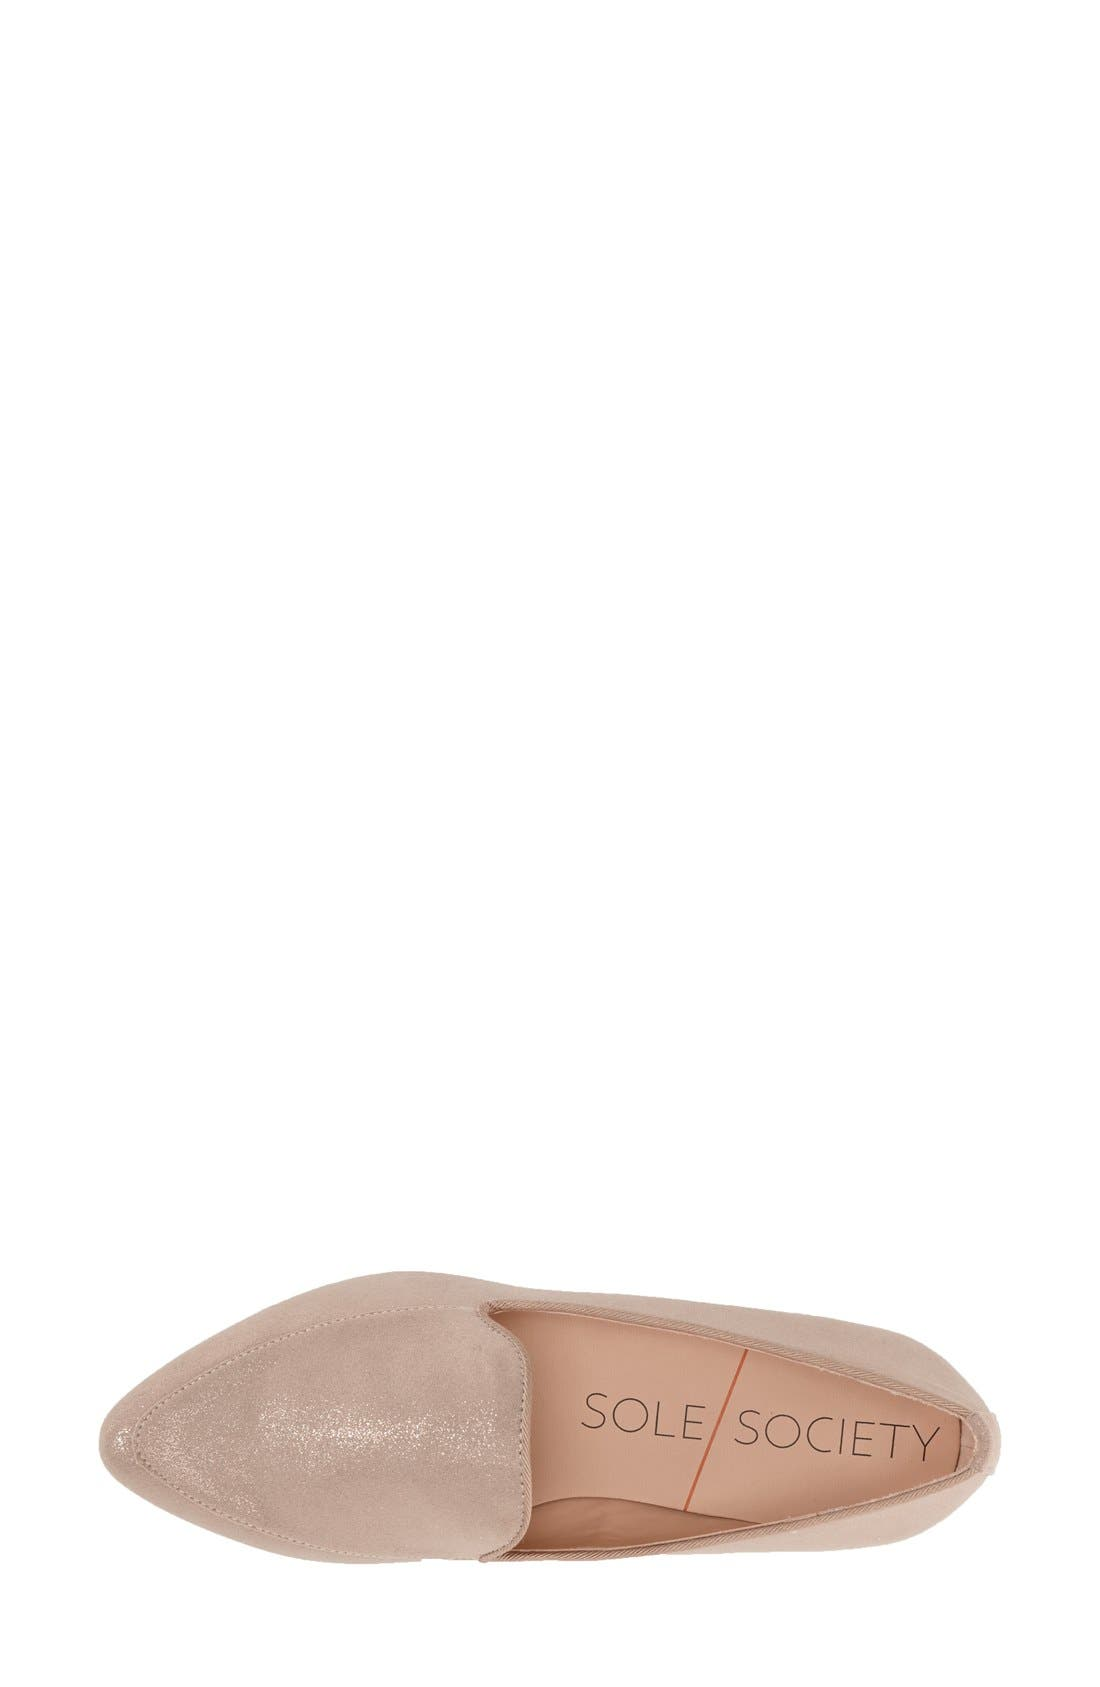 'Sean' Pointy Toe Loafer,                             Alternate thumbnail 3, color,                             Nude Metallic